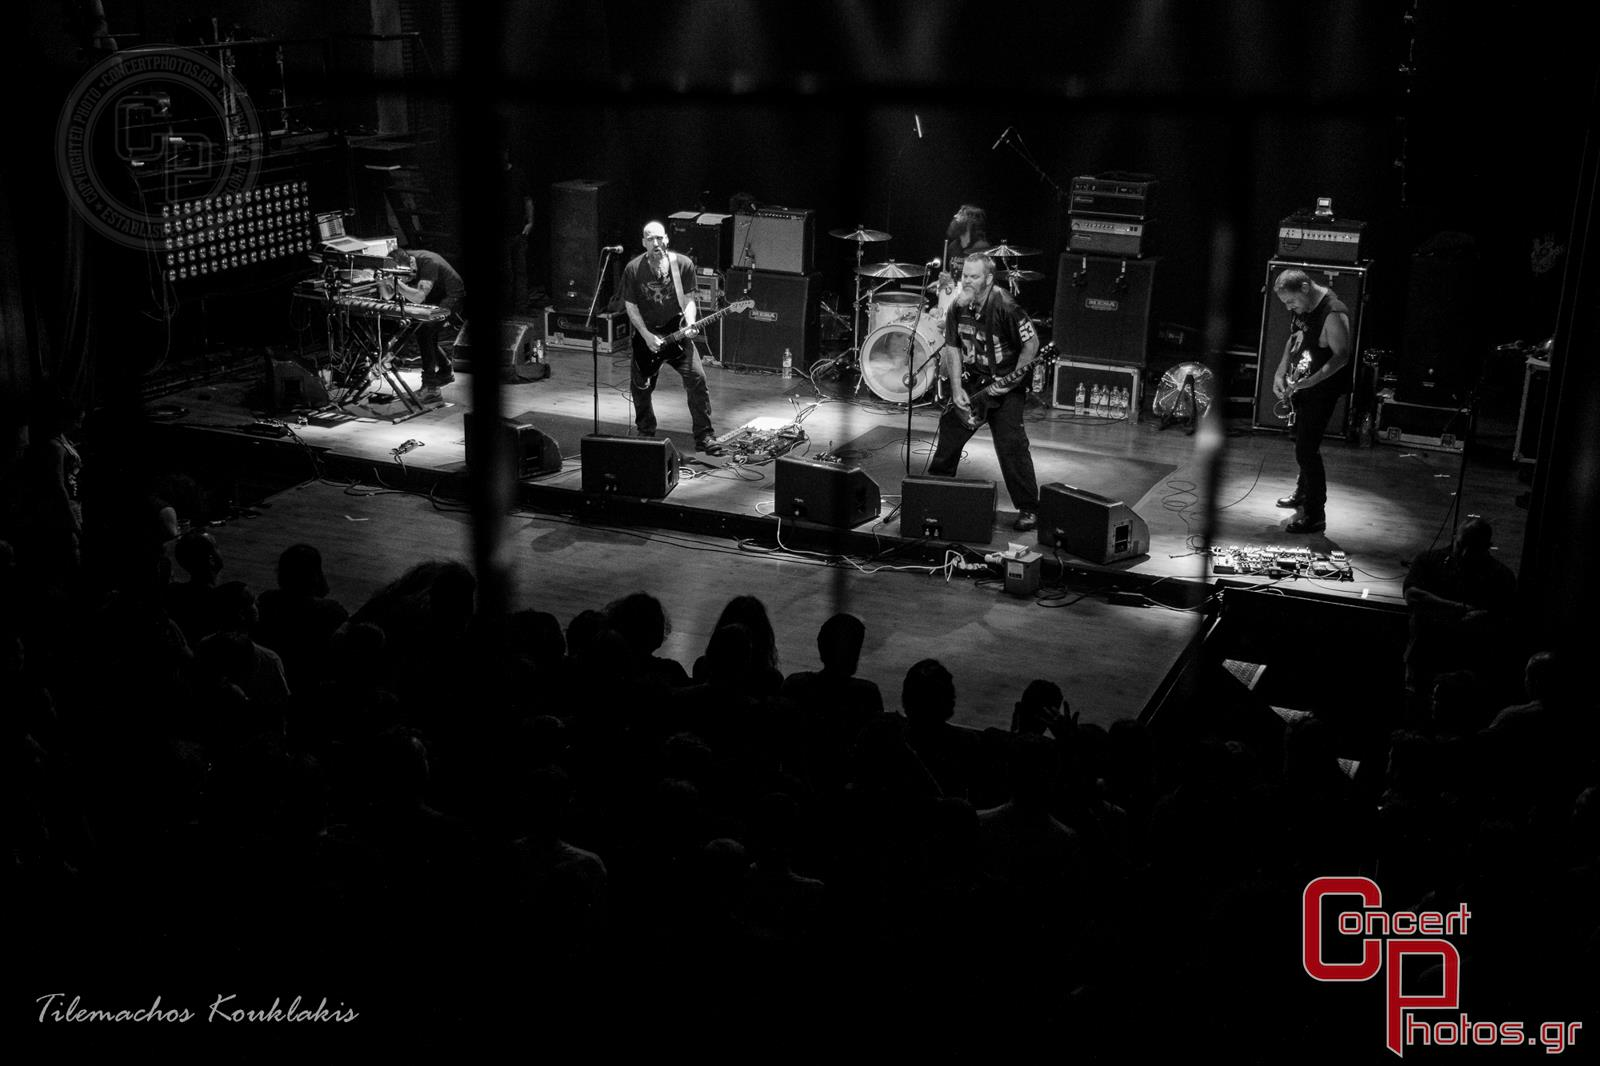 Neurosis-Neurosis photographer:  - concertphotos_20140707_23_56_37-3